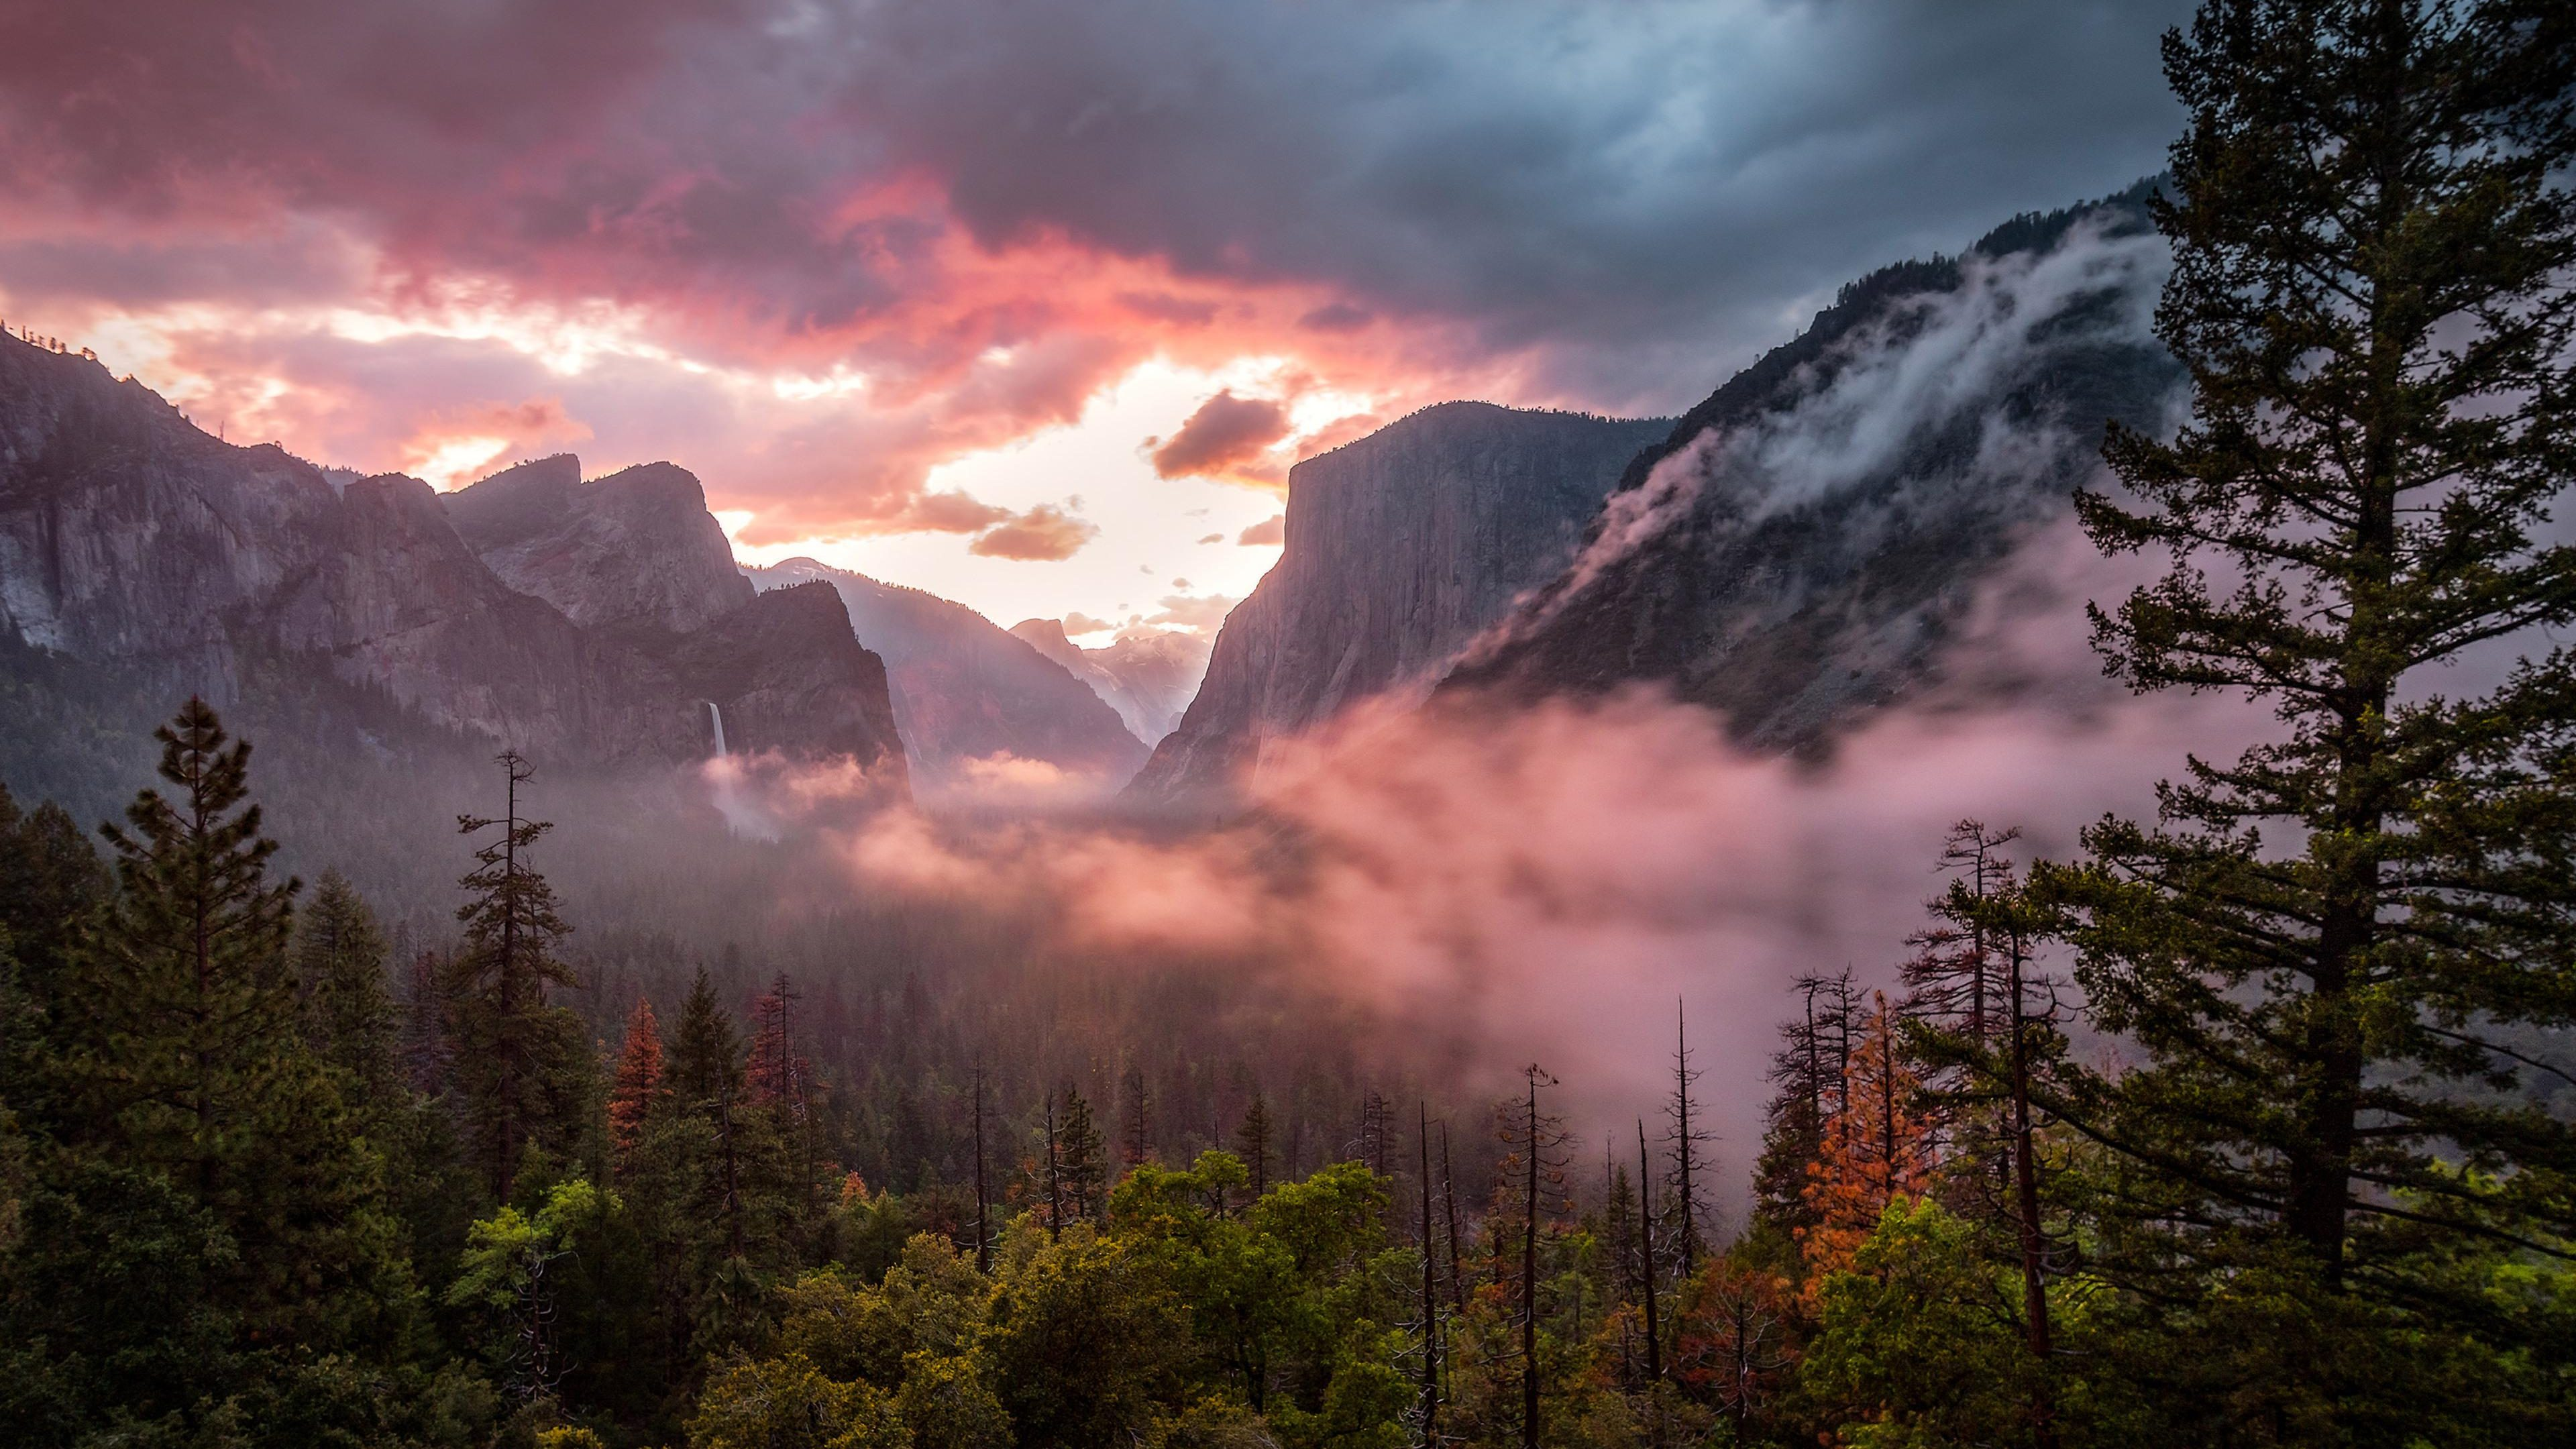 4k Quality Iphone Wallpaper: 4K Yosemite Wallpapers High Quality